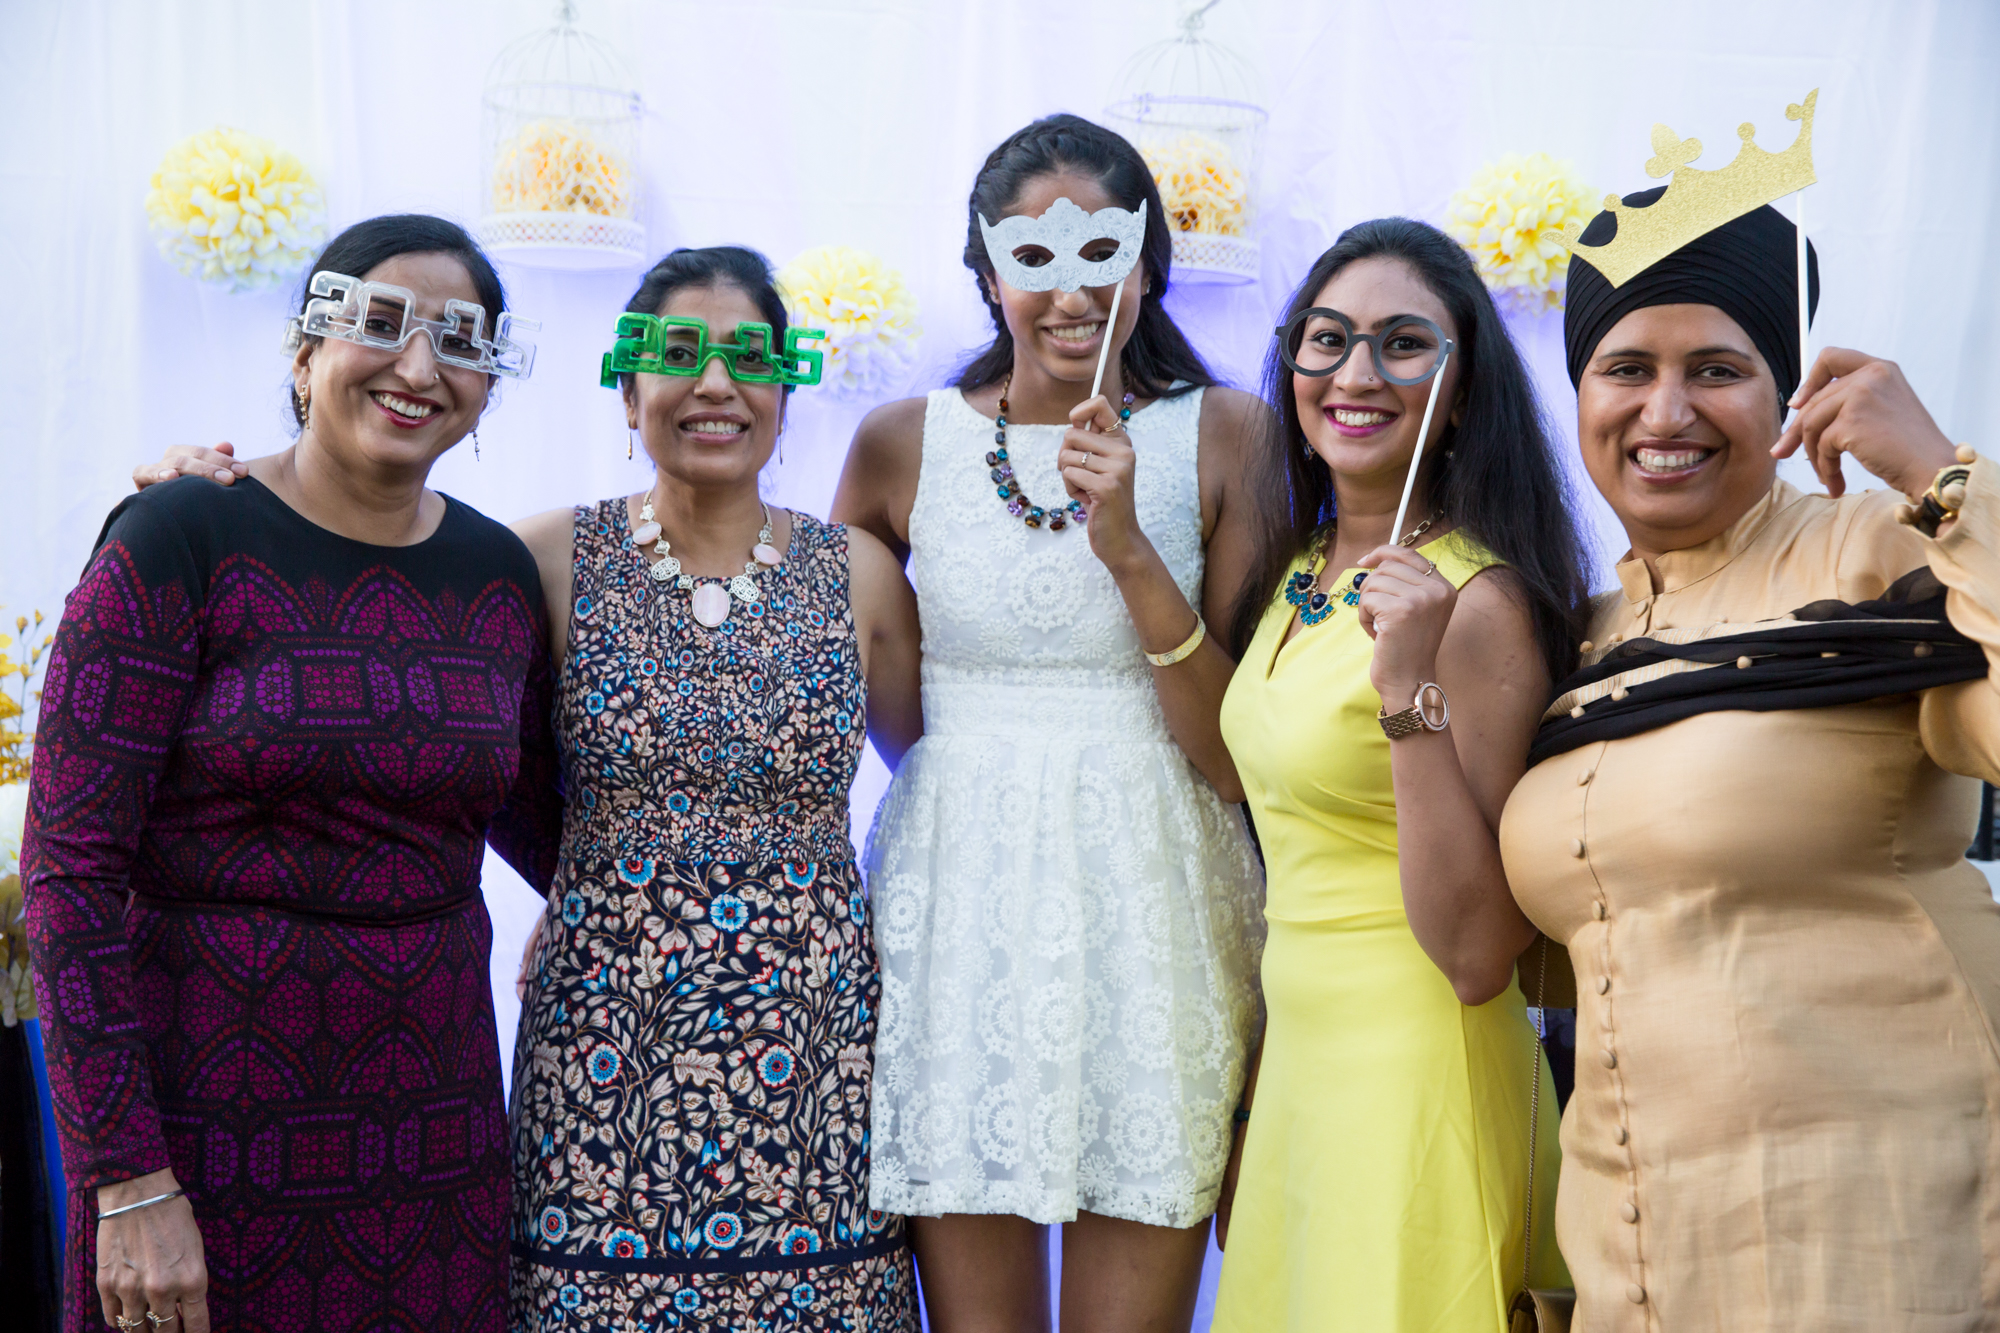 17-William Hendra Photography Singh Graduation Party.jpg